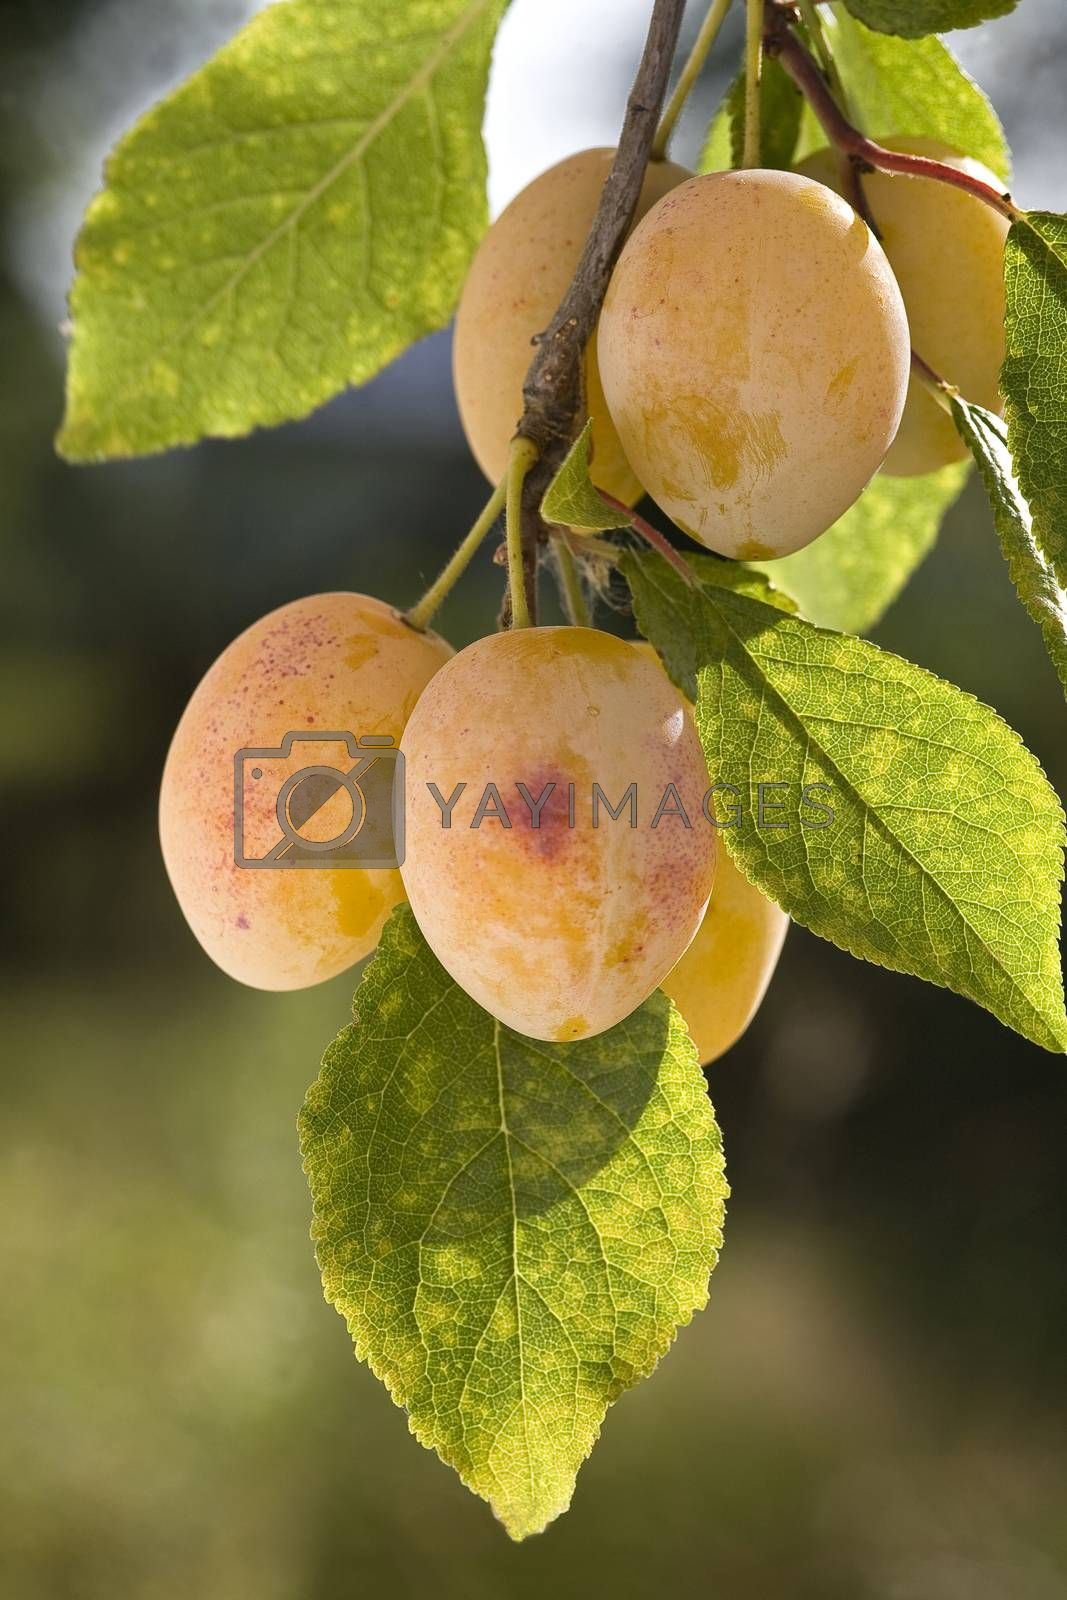 Royalty free image of yellow plums on branch by phortcach